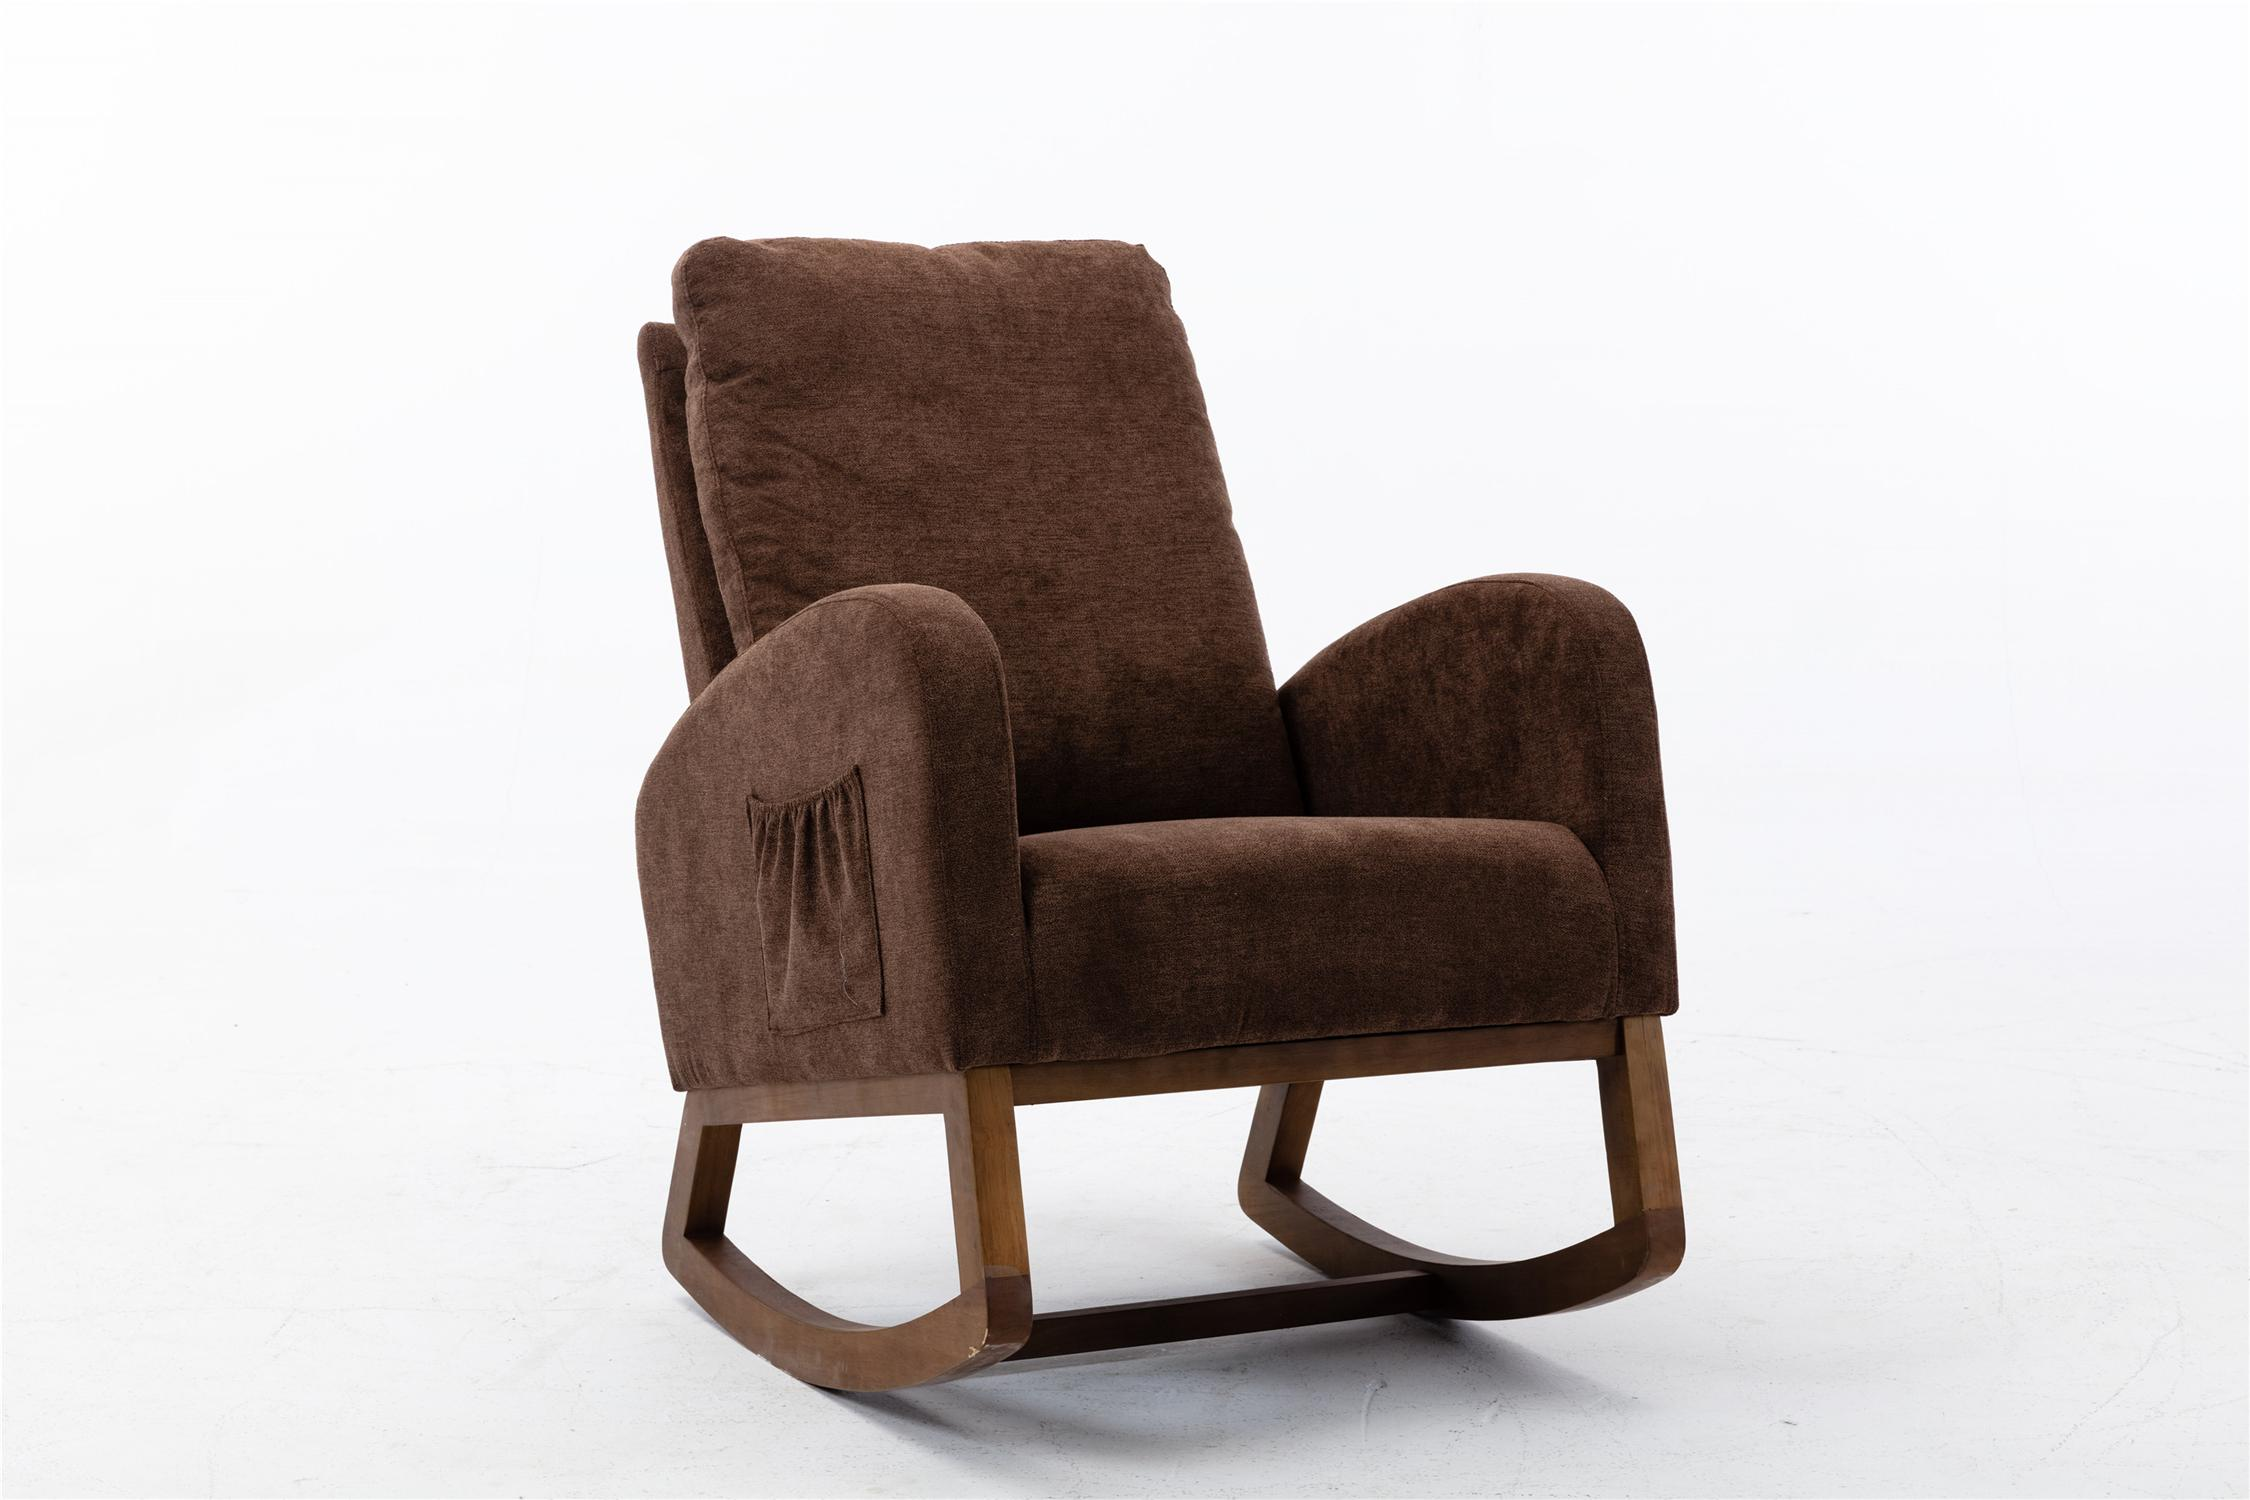 USA form Ship Rocking Chair Mid-Century Modern Nursery Rocking Armchair Upholstered Tall Back Accent Glider Rocker for Living Room (Brown)